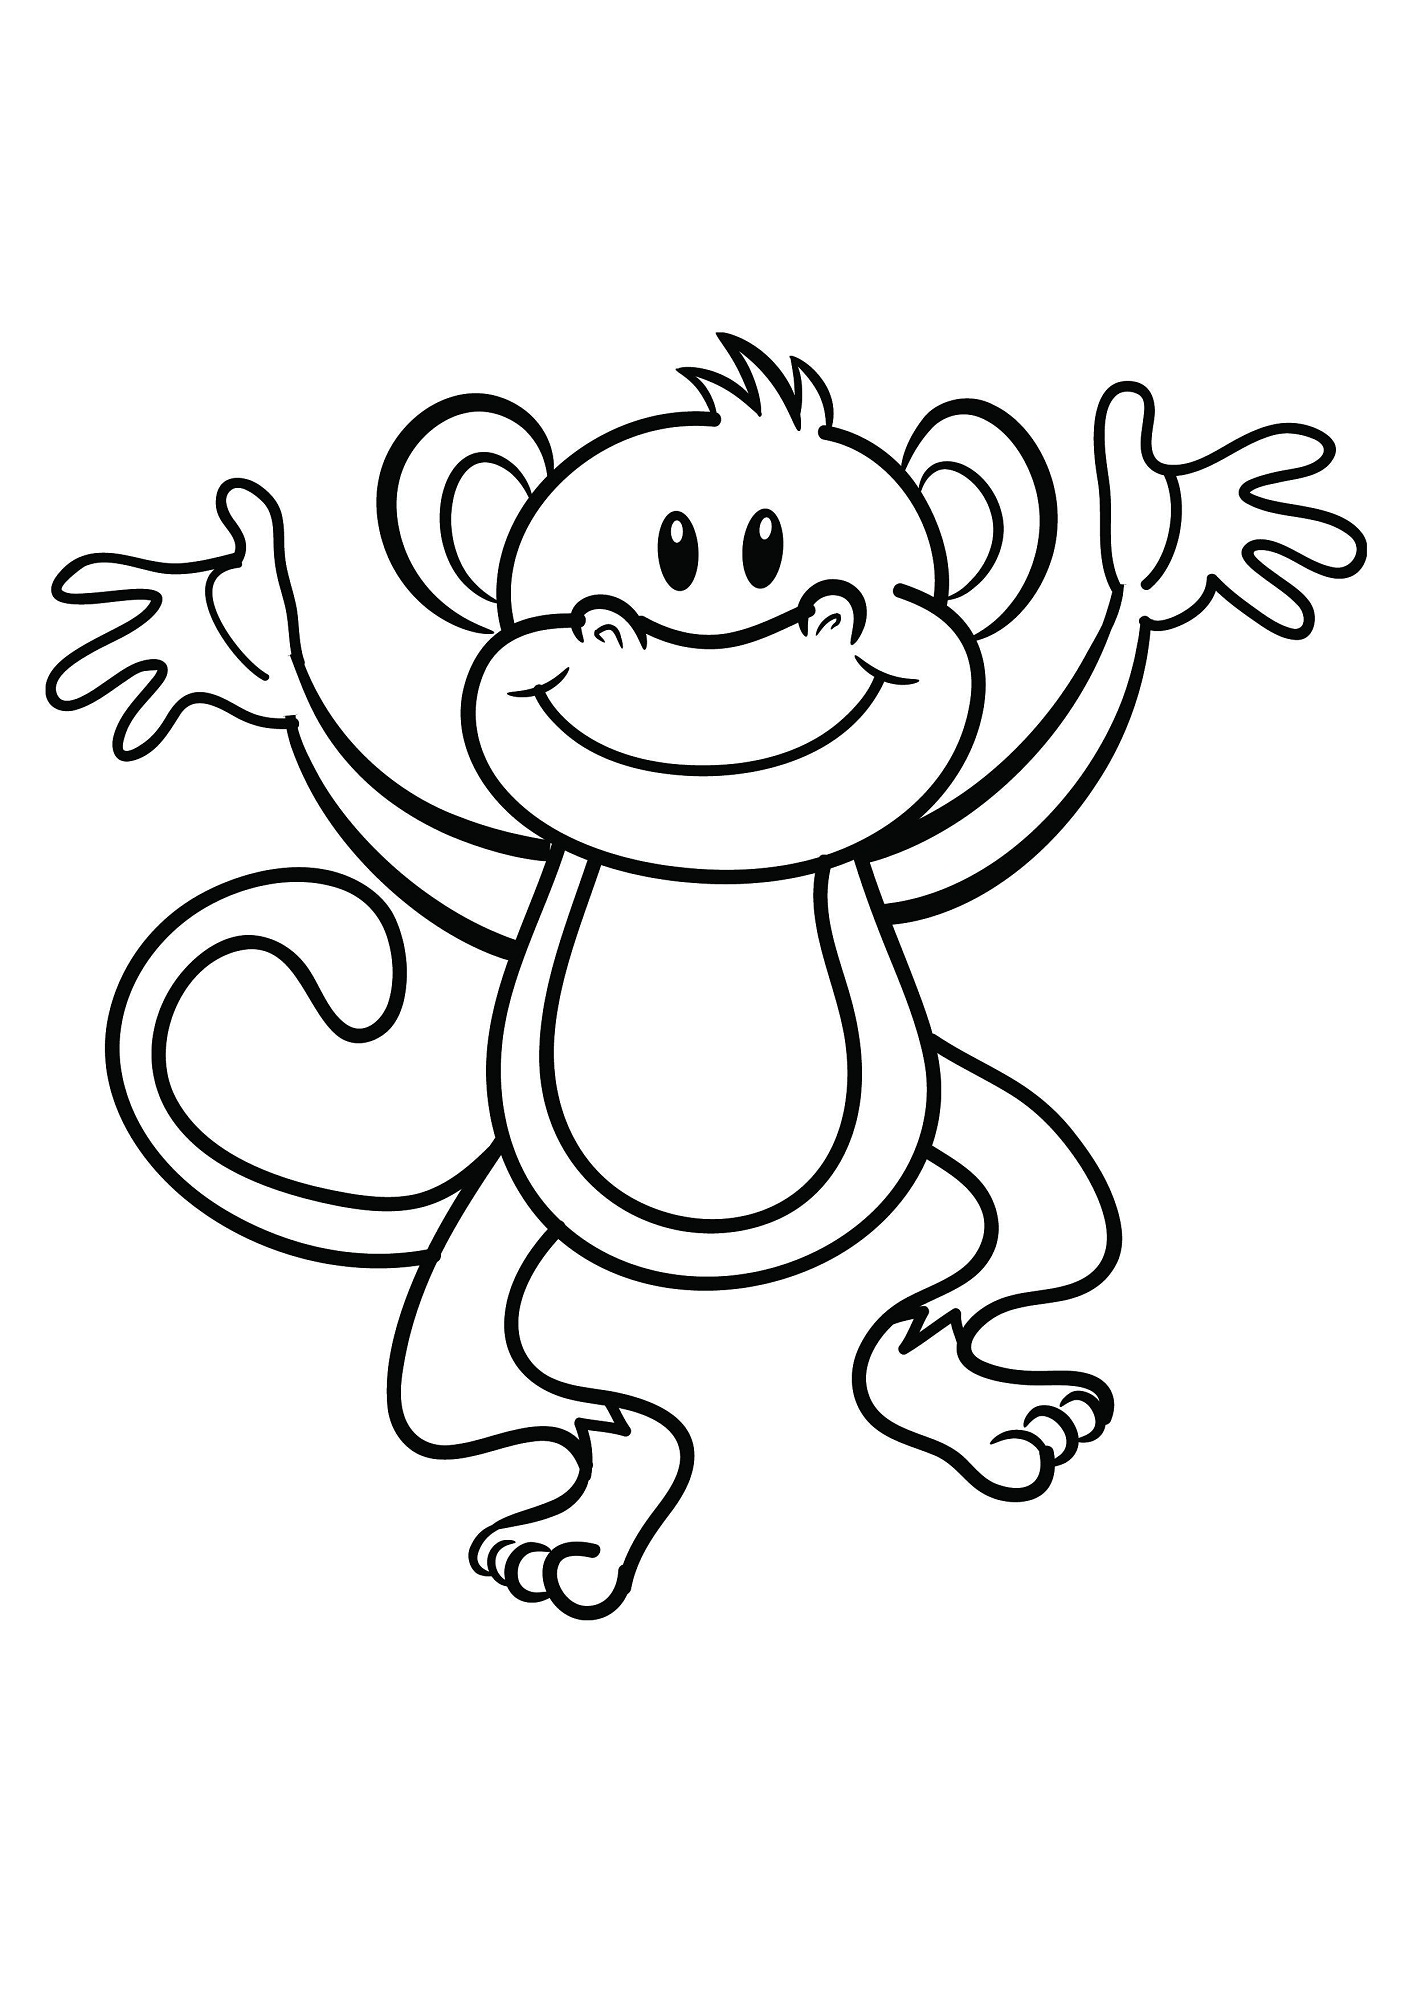 coloring monkey printable coloring pages of monkeys printable activity shelter printable coloring monkey 1 1